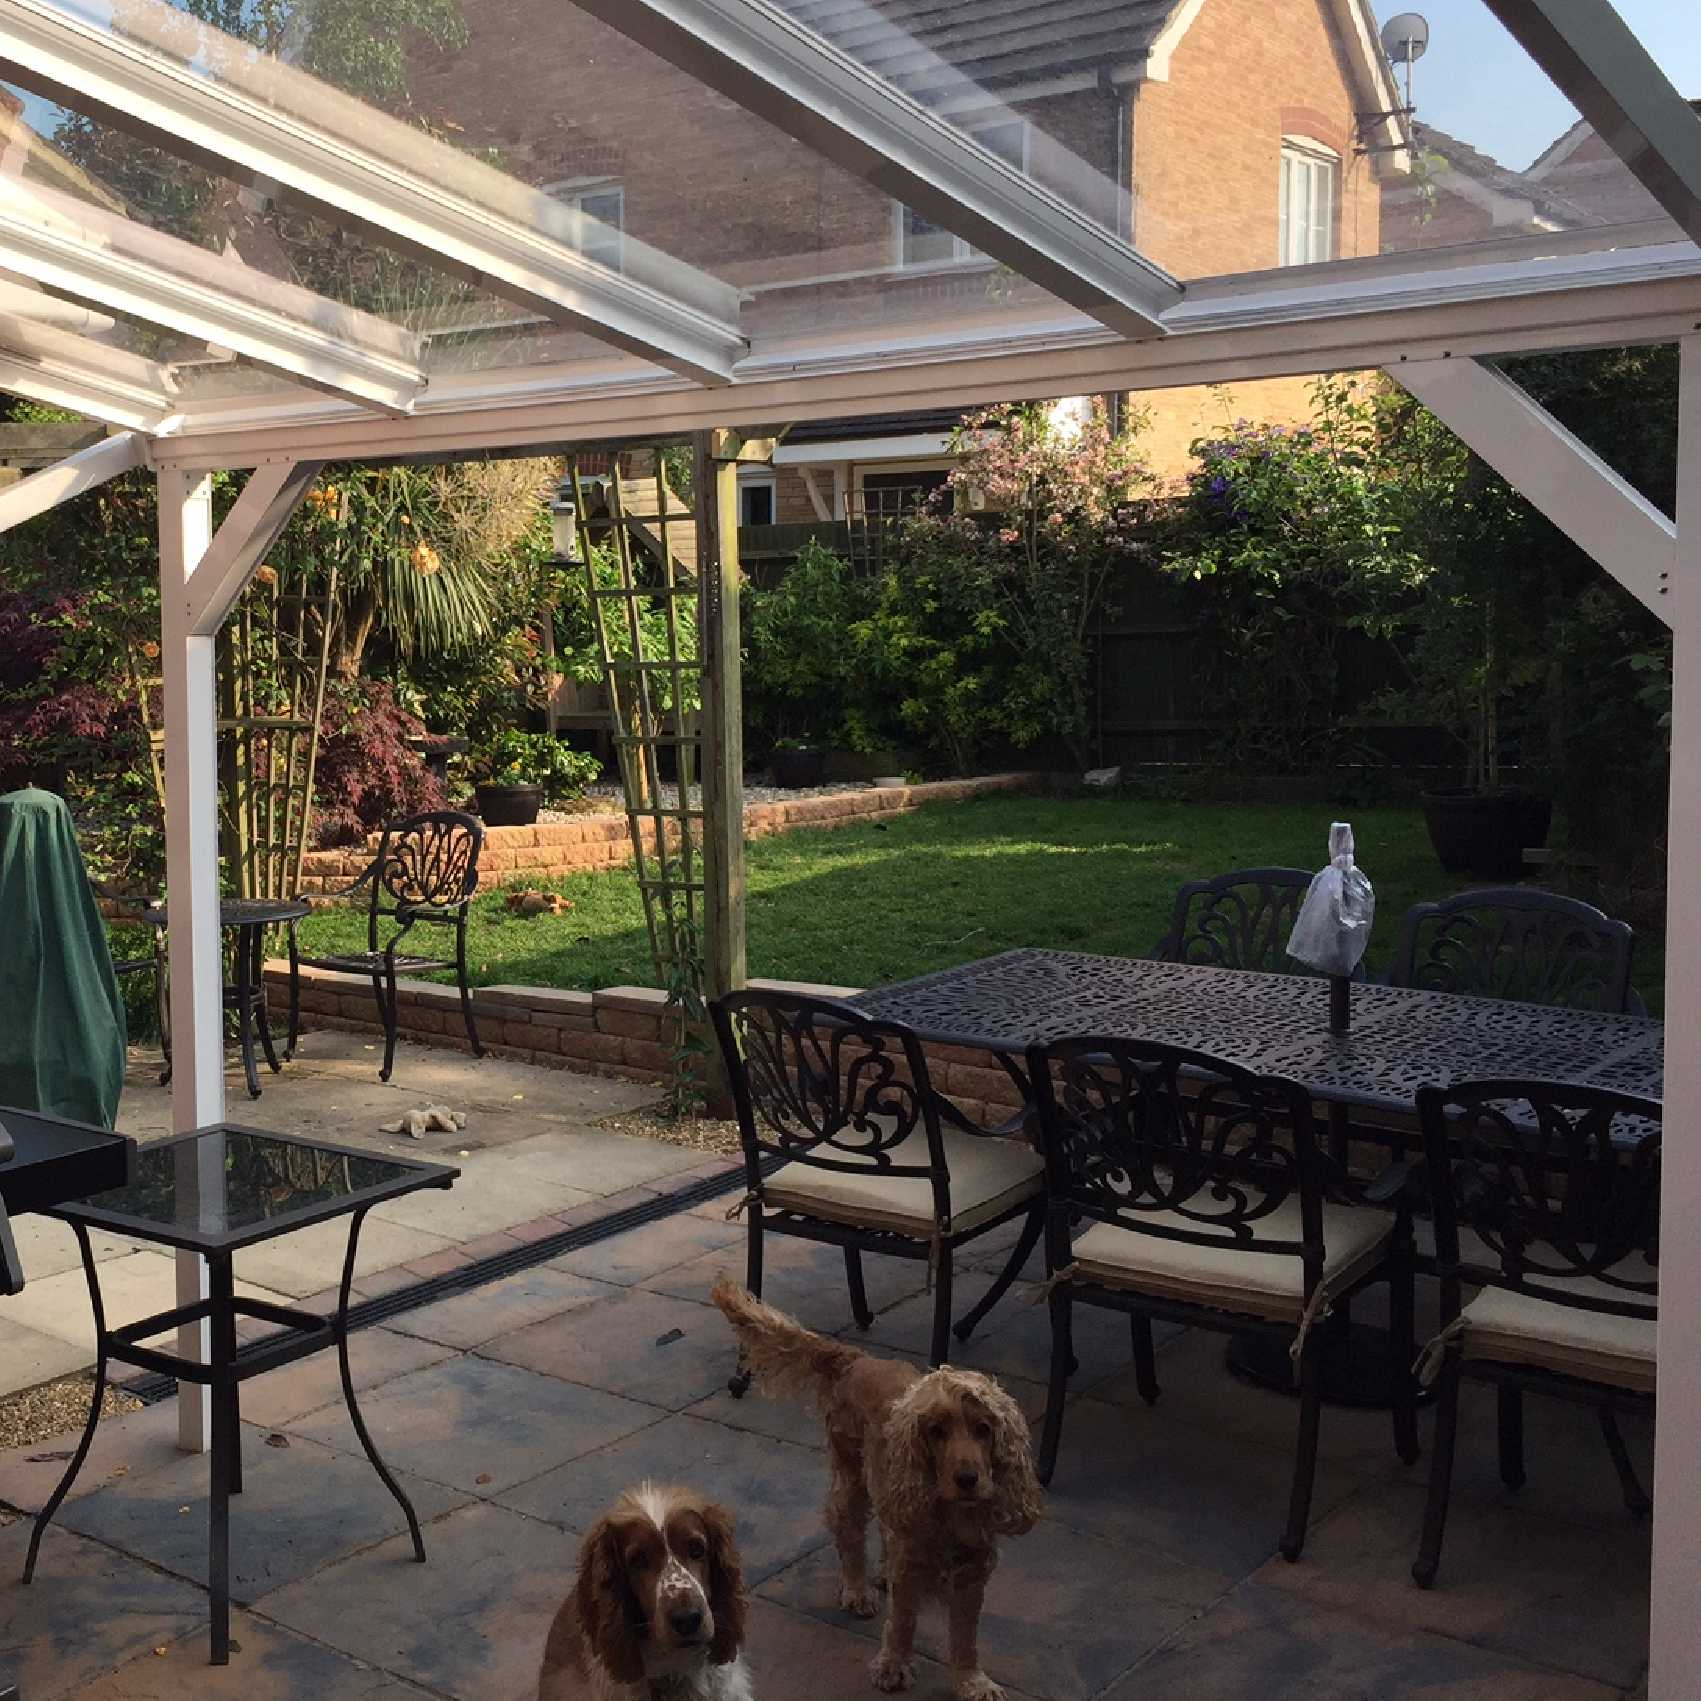 Affordable Omega Smart White Lean-To Canopy with 6mm Glass Clear Plate Polycarbonate Glazing - 7.0m (W) x 2.0m (P), (4) Supporting Posts